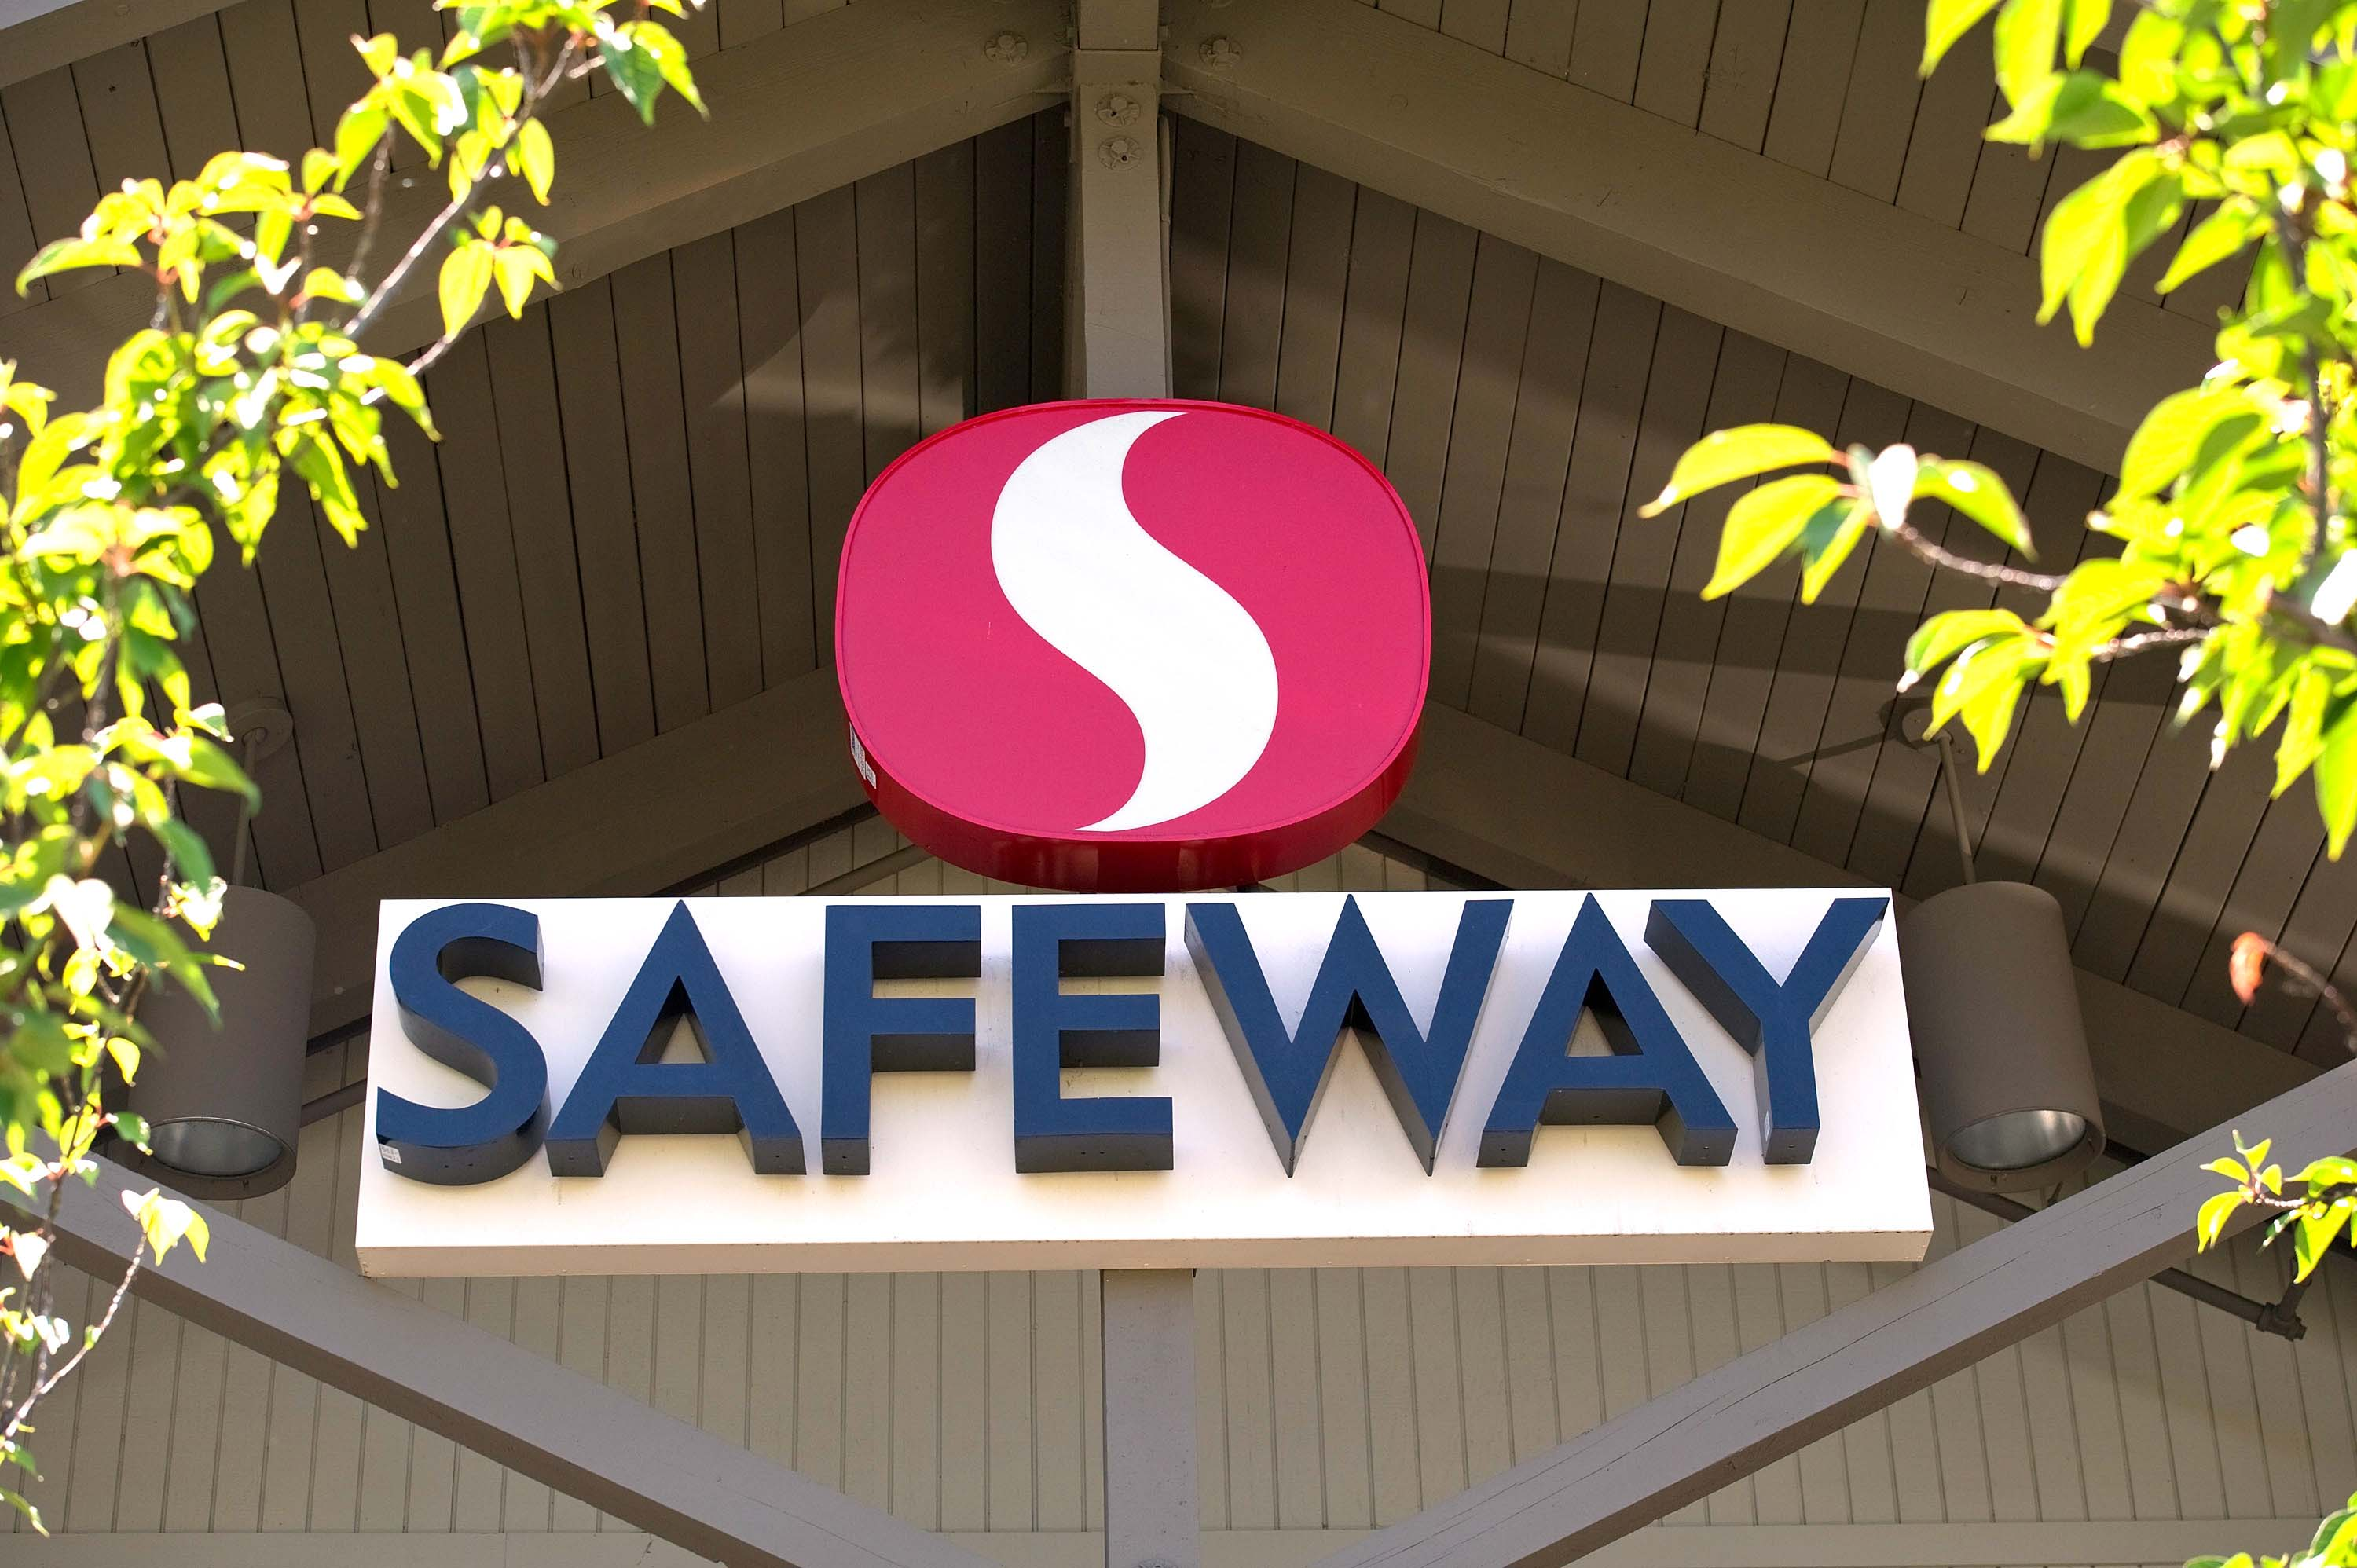 Apparently the Safeway is the surest way